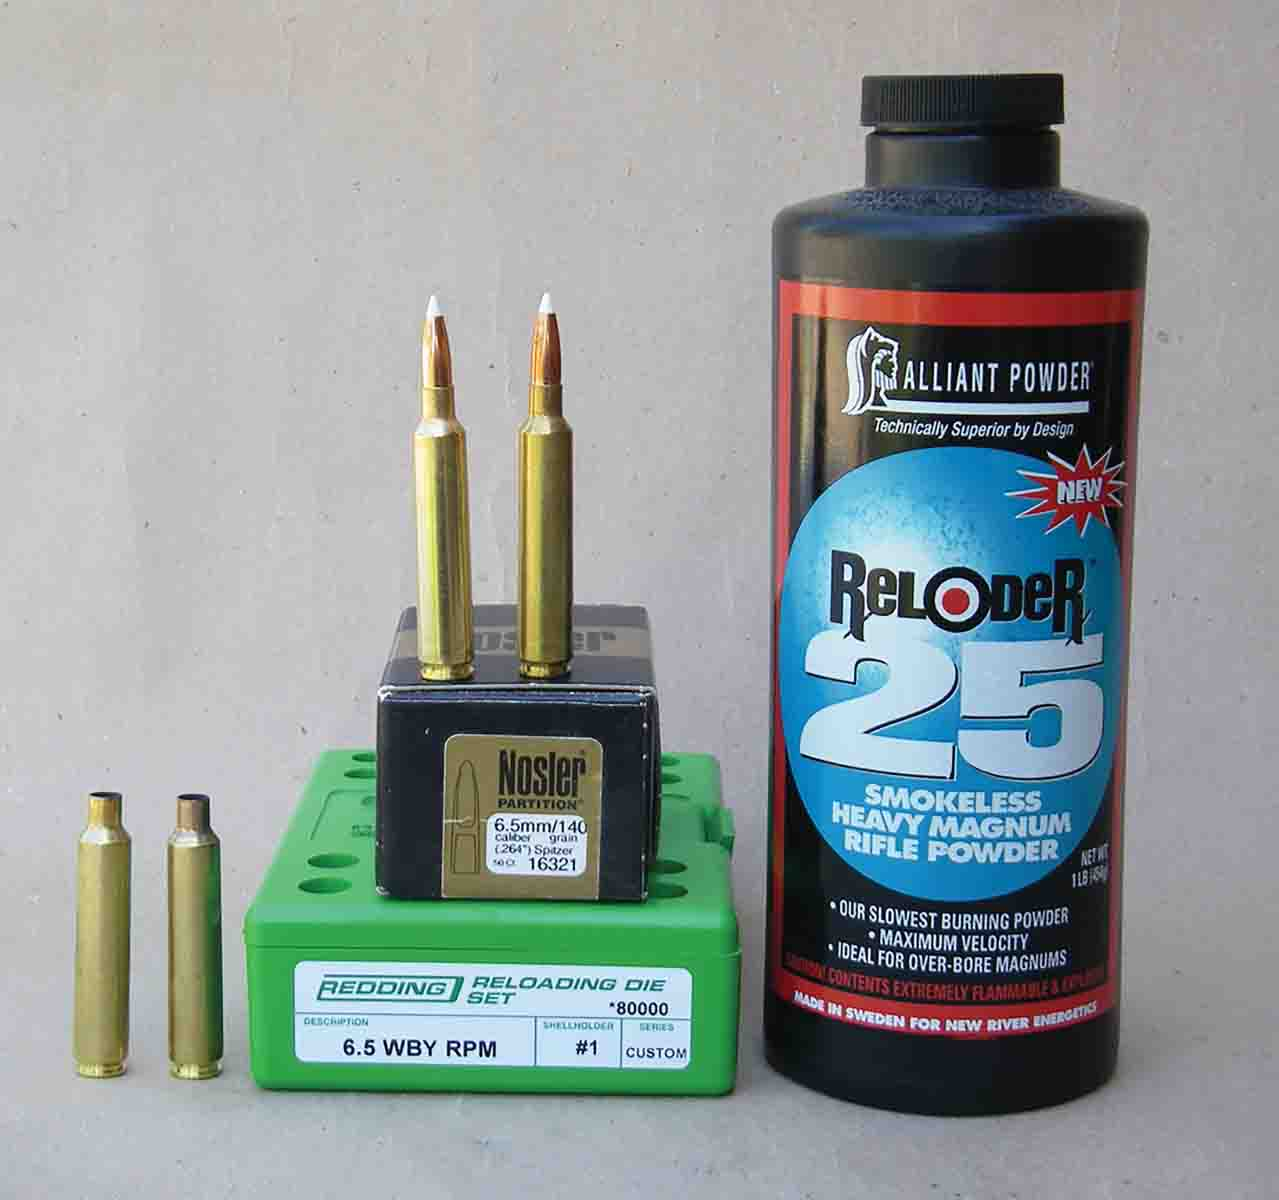 Alliant Reloder 25 is an excellent powder choice when handloading the 6.5 Weatherby RPM with 140-grain bullets.